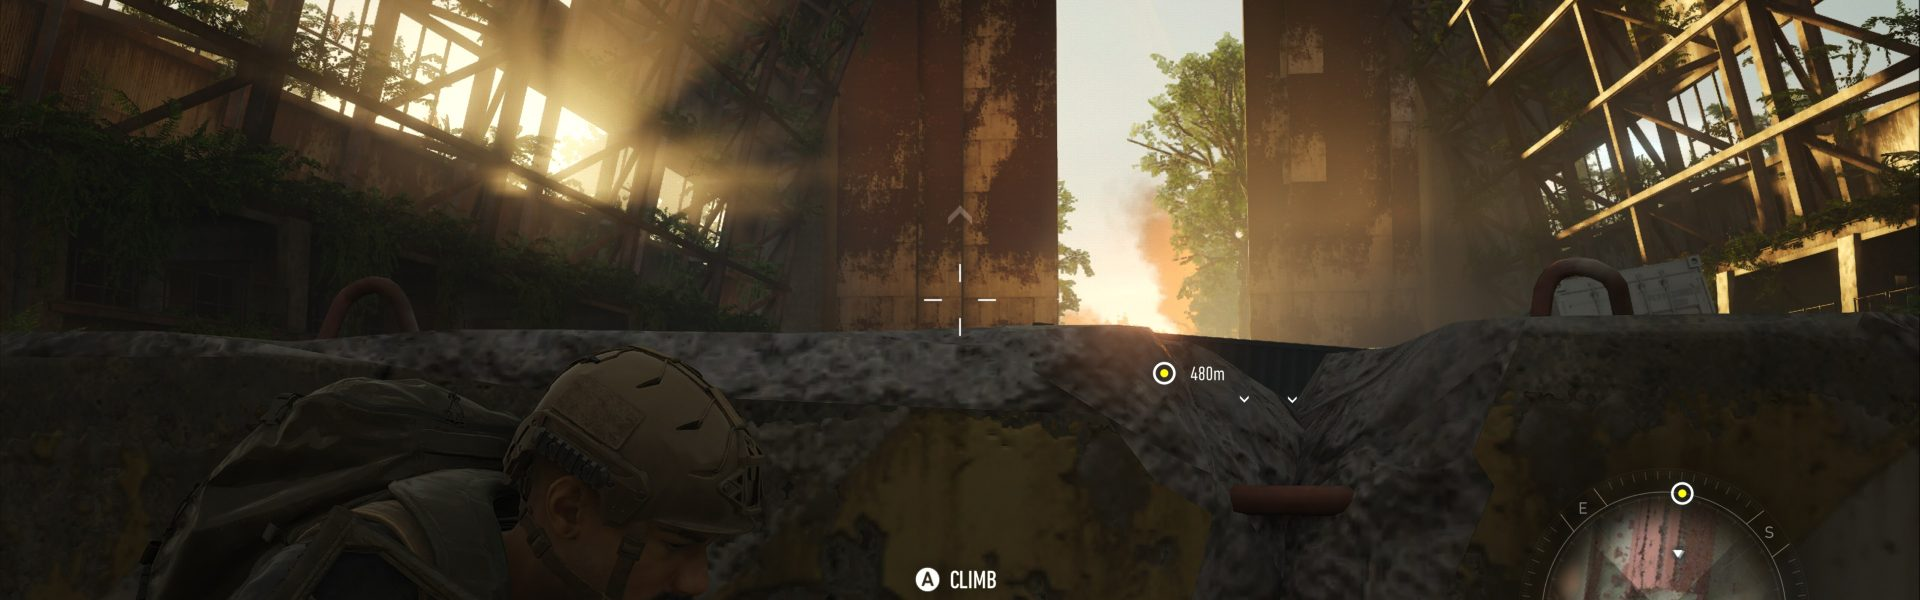 Ghost Recon Breakpoint Impression